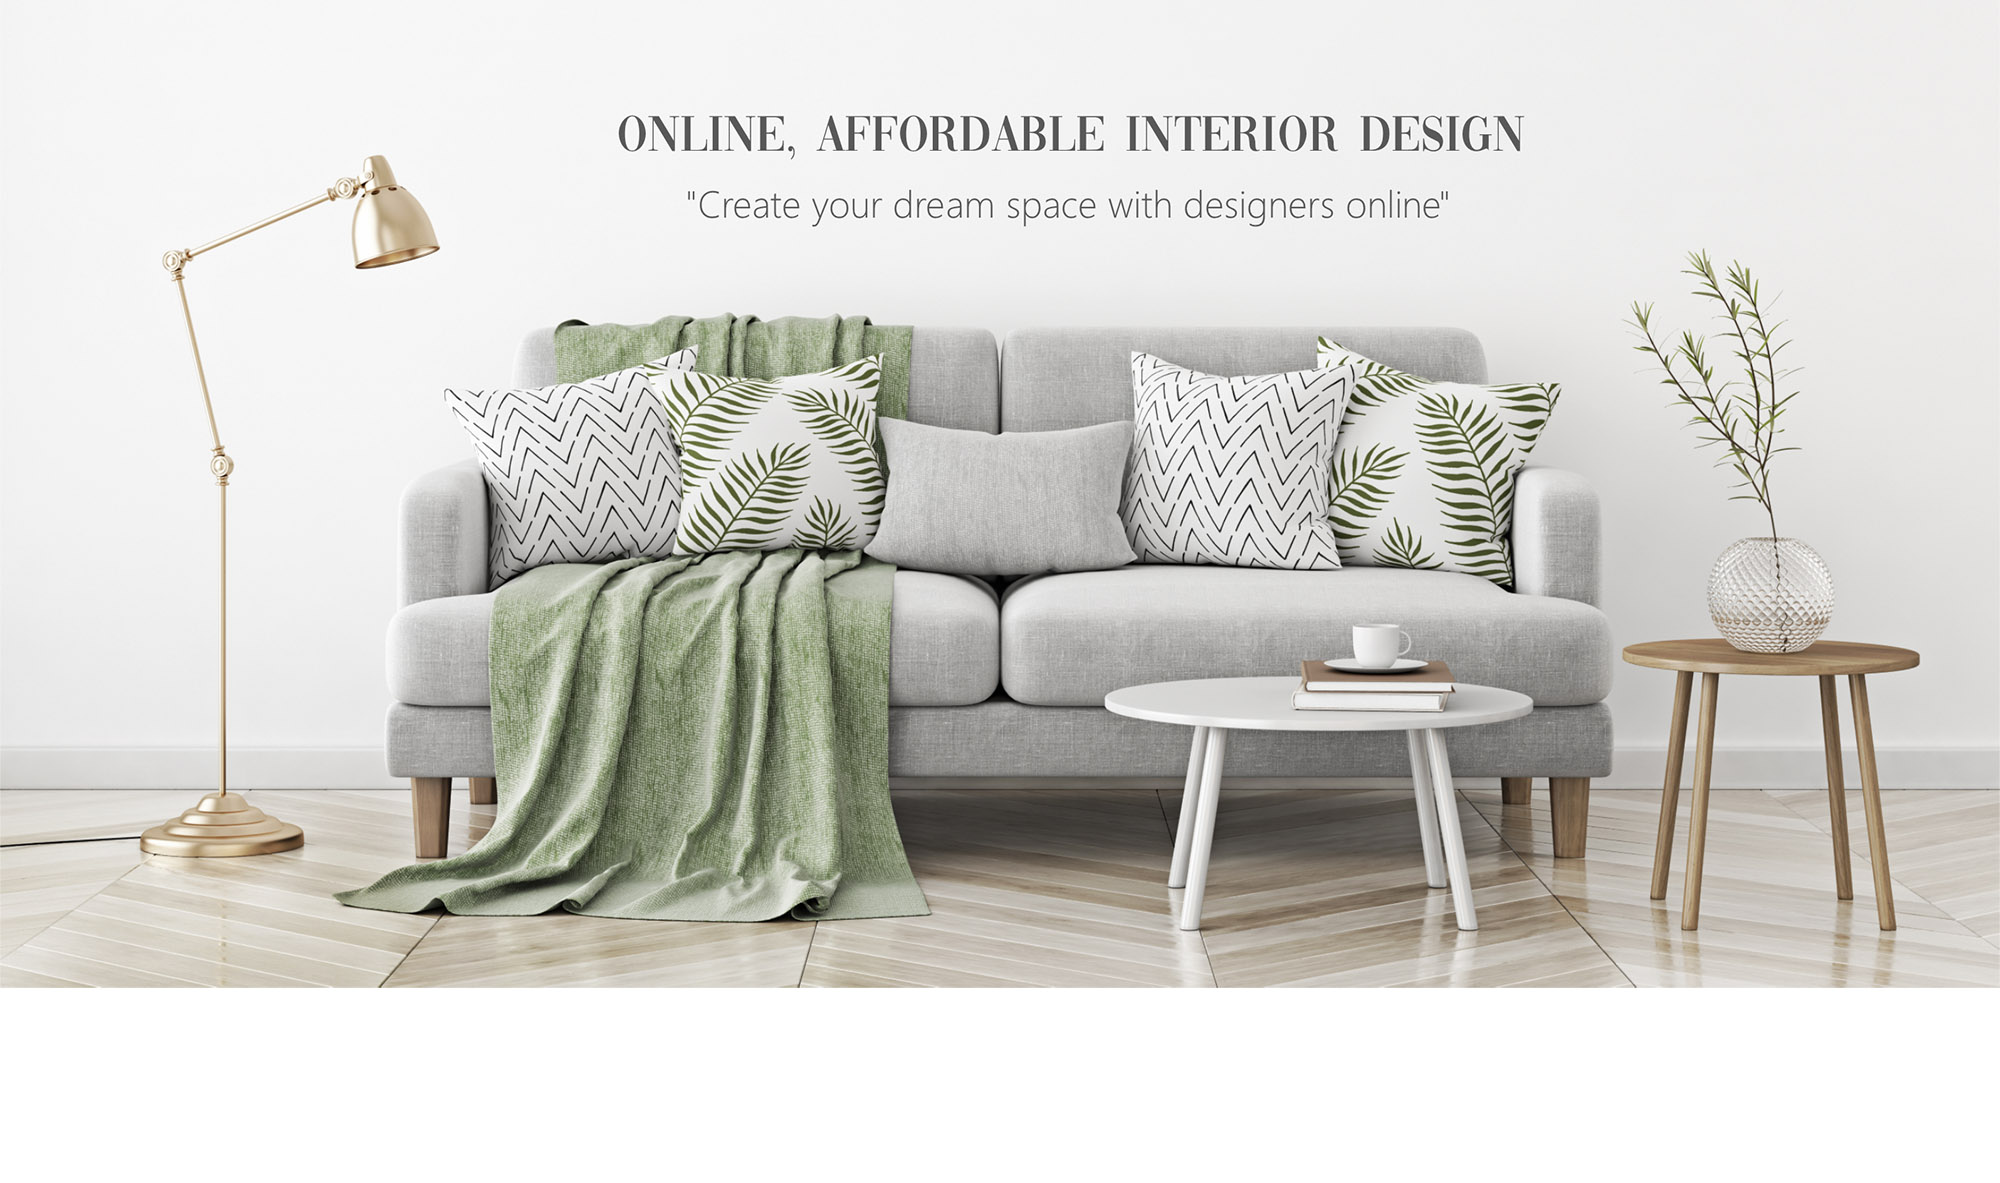 Spruce Interiors Online affordable interior design